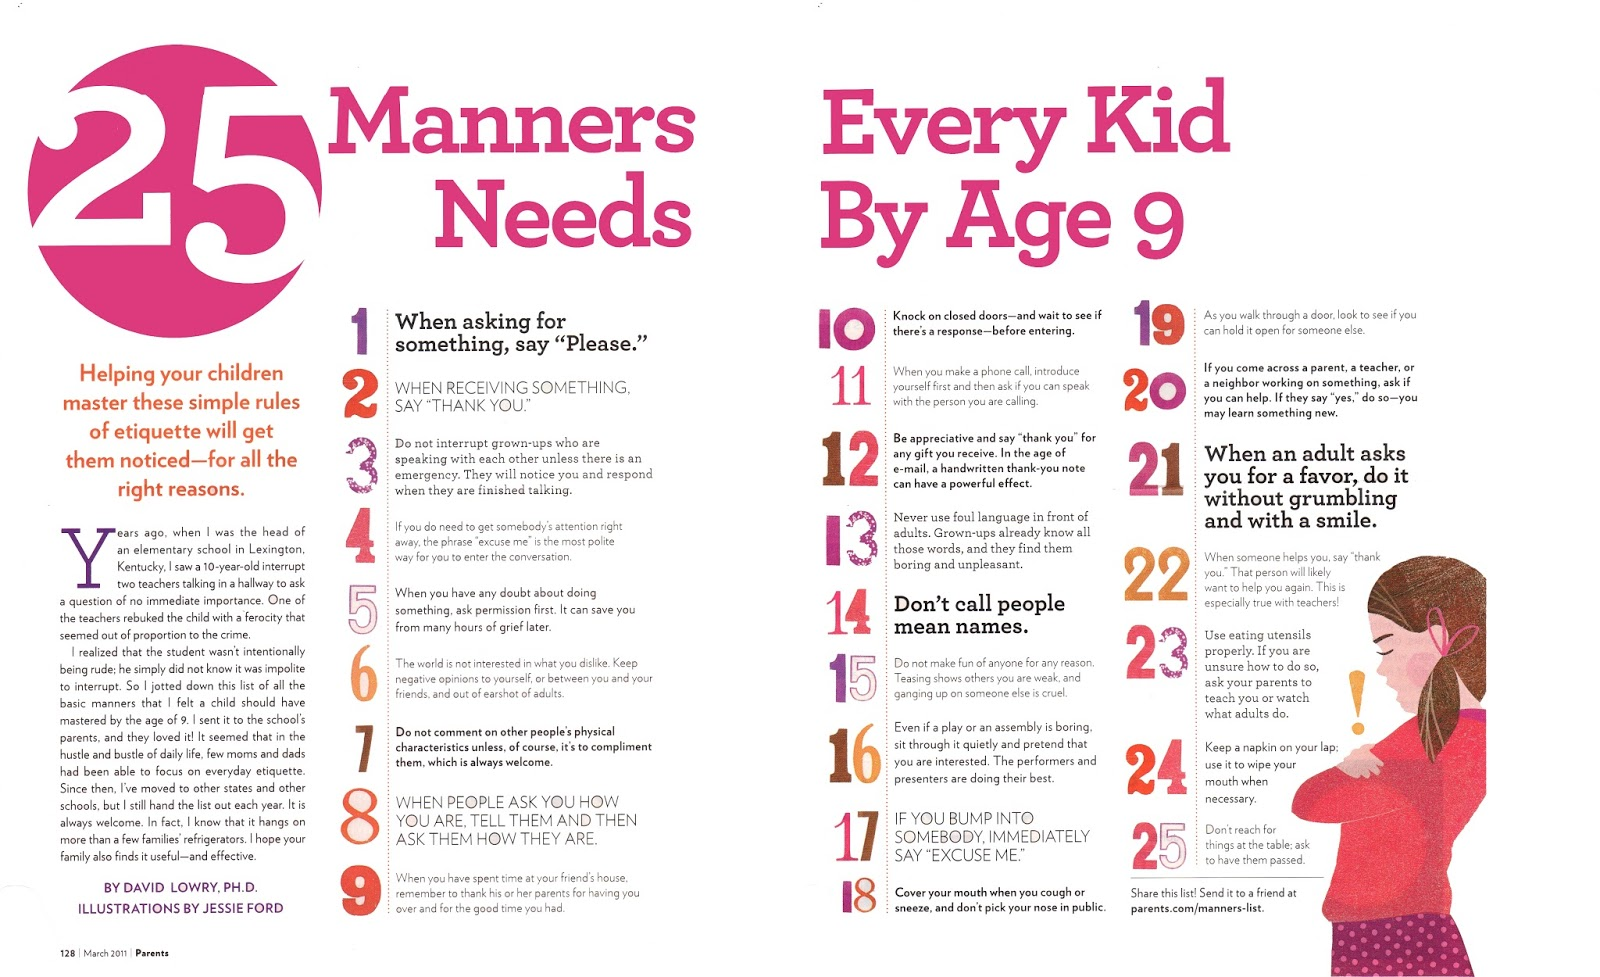 365 Days Of Circus 25 Manners Every Kid Needs By Age 9